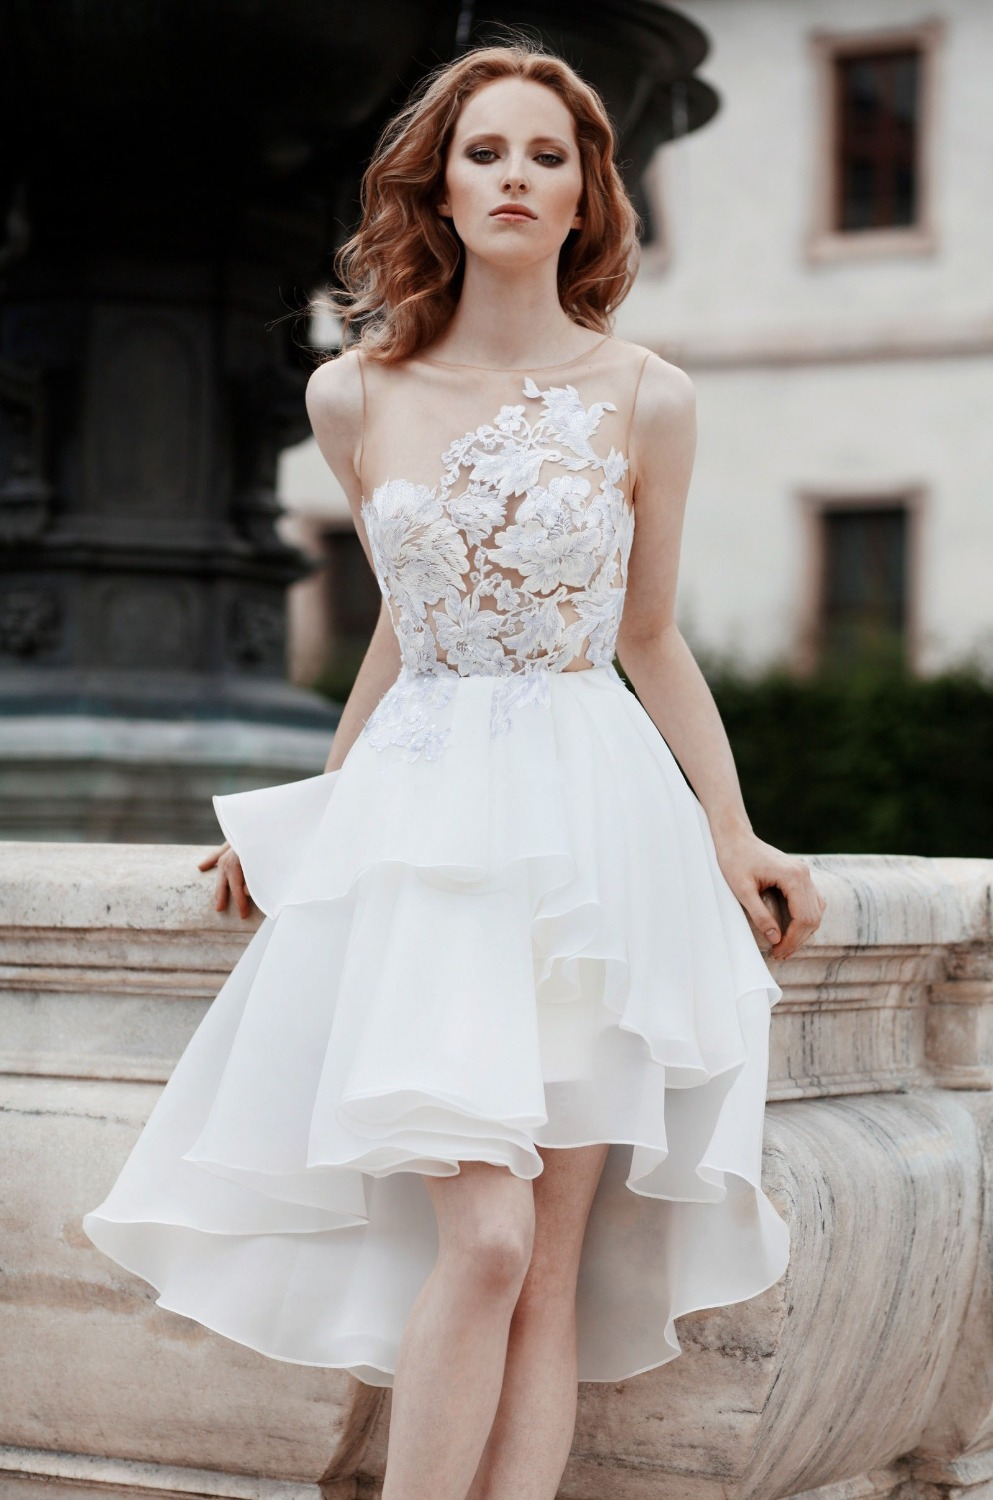 Aliexpress Buy Abiti Da Sposa See Through Bodice With Lace Short Wedding Dress White